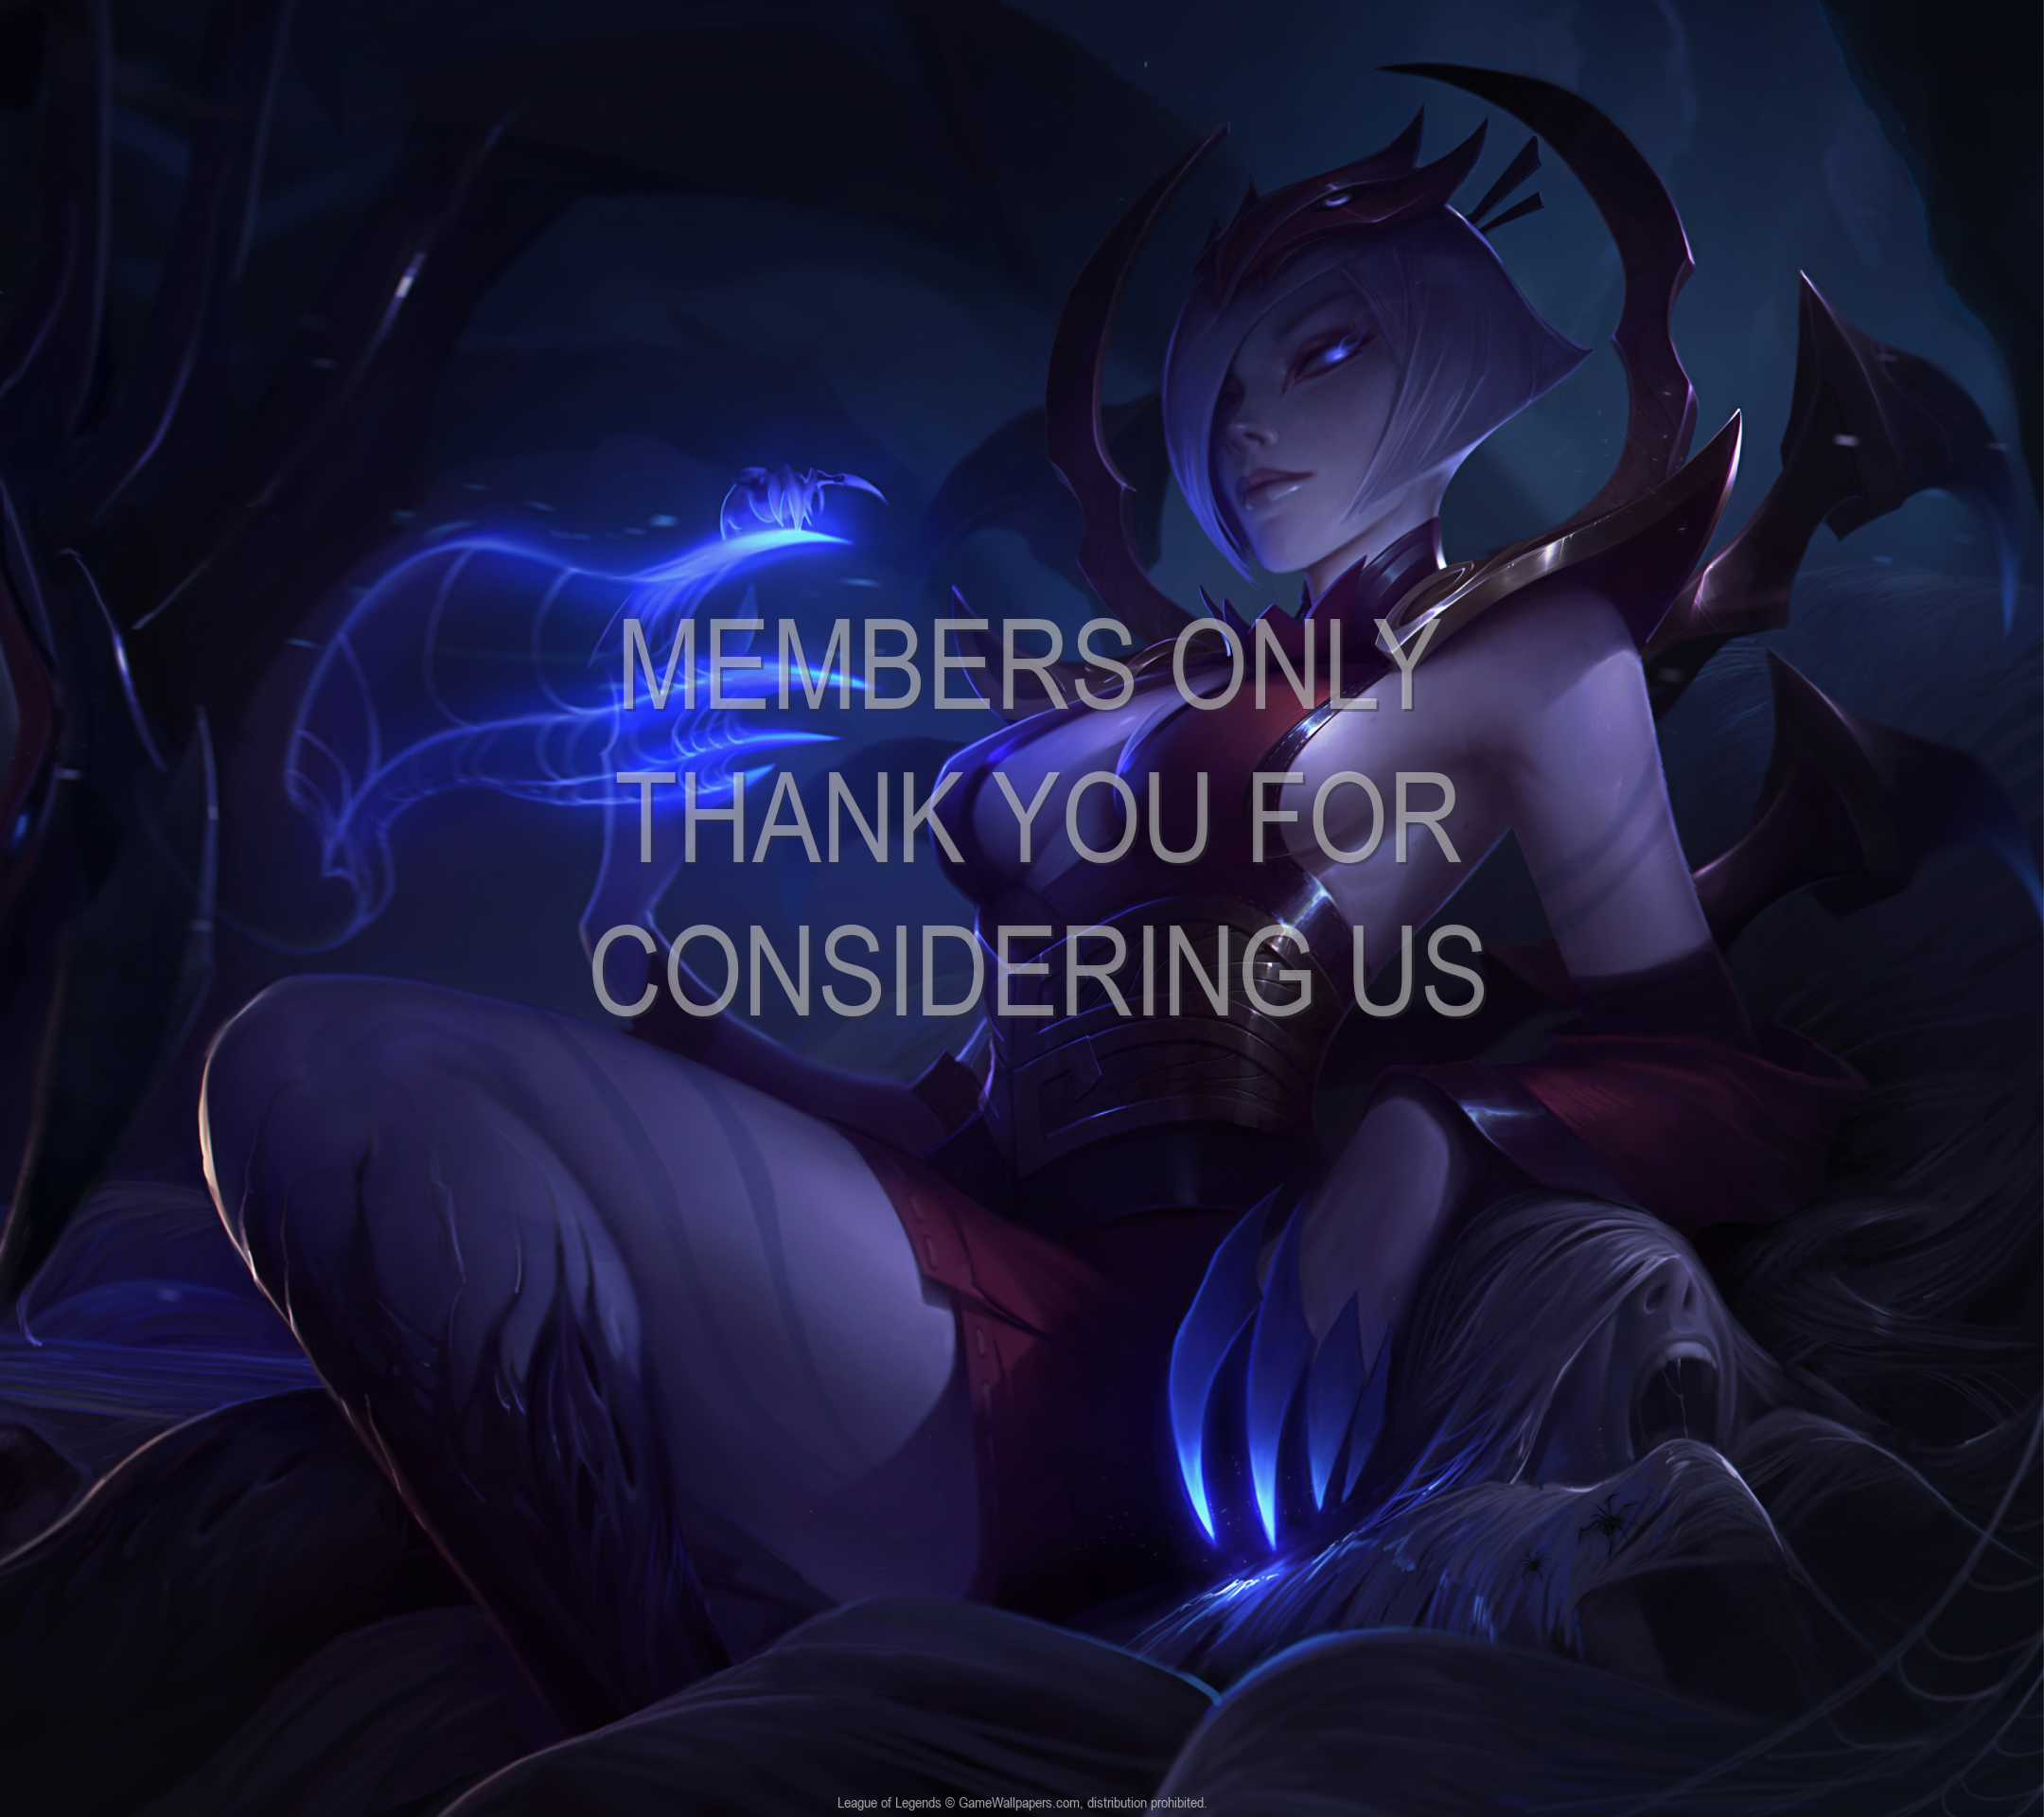 League of Legends 1080p Horizontal Handy Hintergrundbild 59